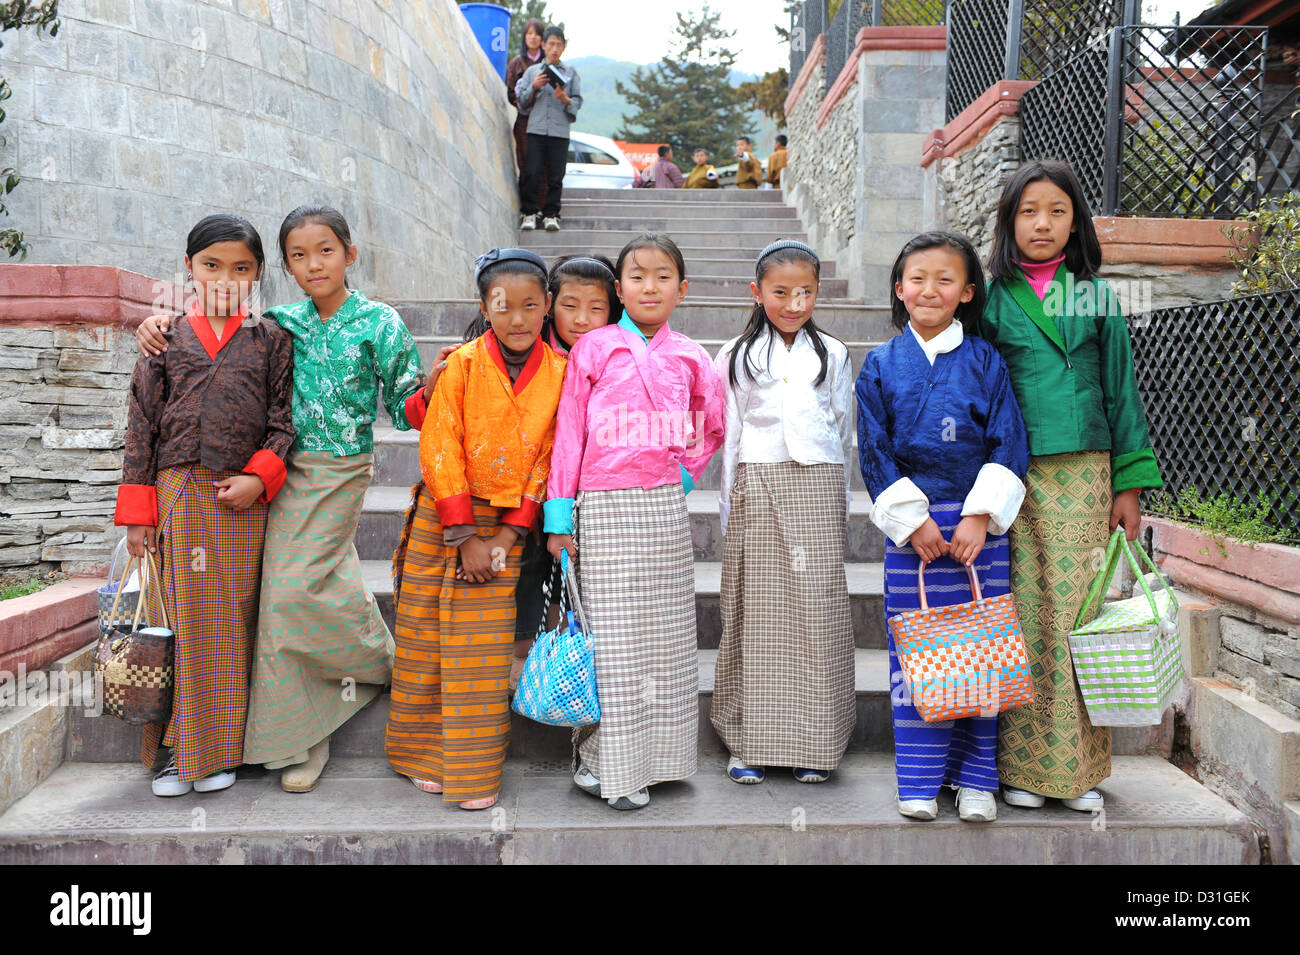 Group of young girls in National costume on their way to school in Thimphu, Bhutan - Stock Image